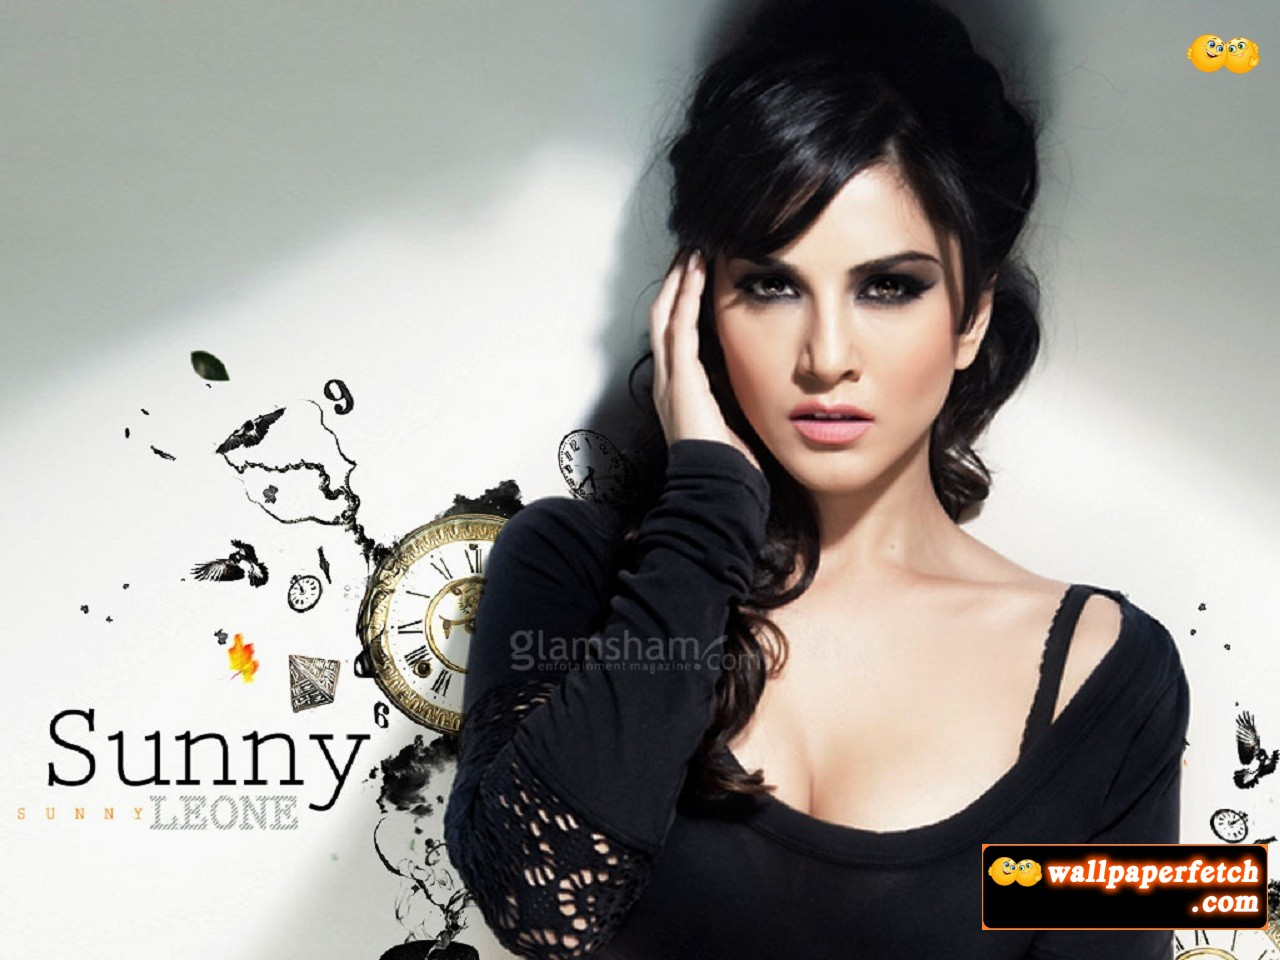 wallpaper fetch sunny leone hot wallpapers 2012